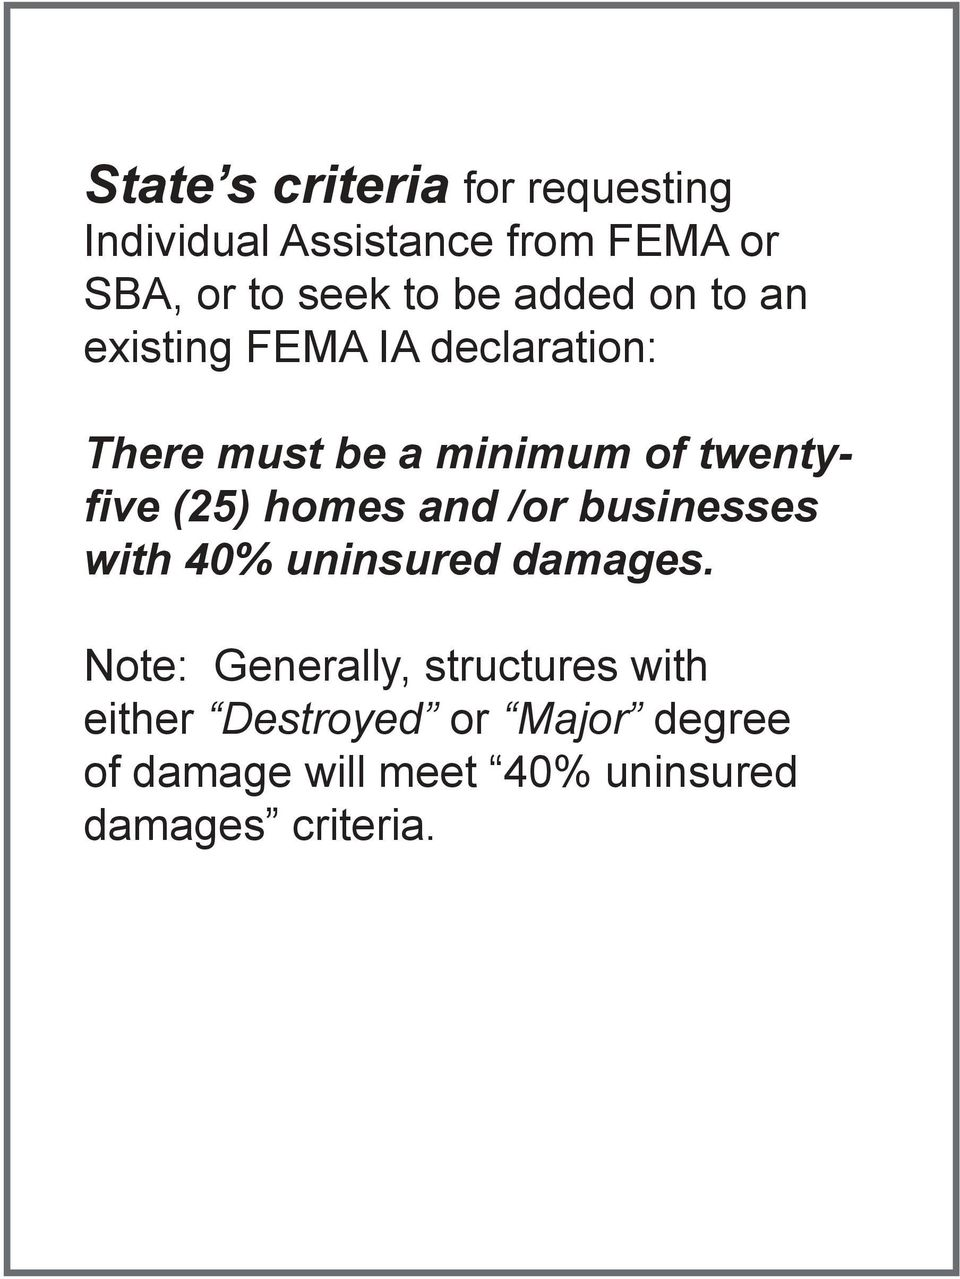 (25) homes and /or businesses with 40% uninsured damages.